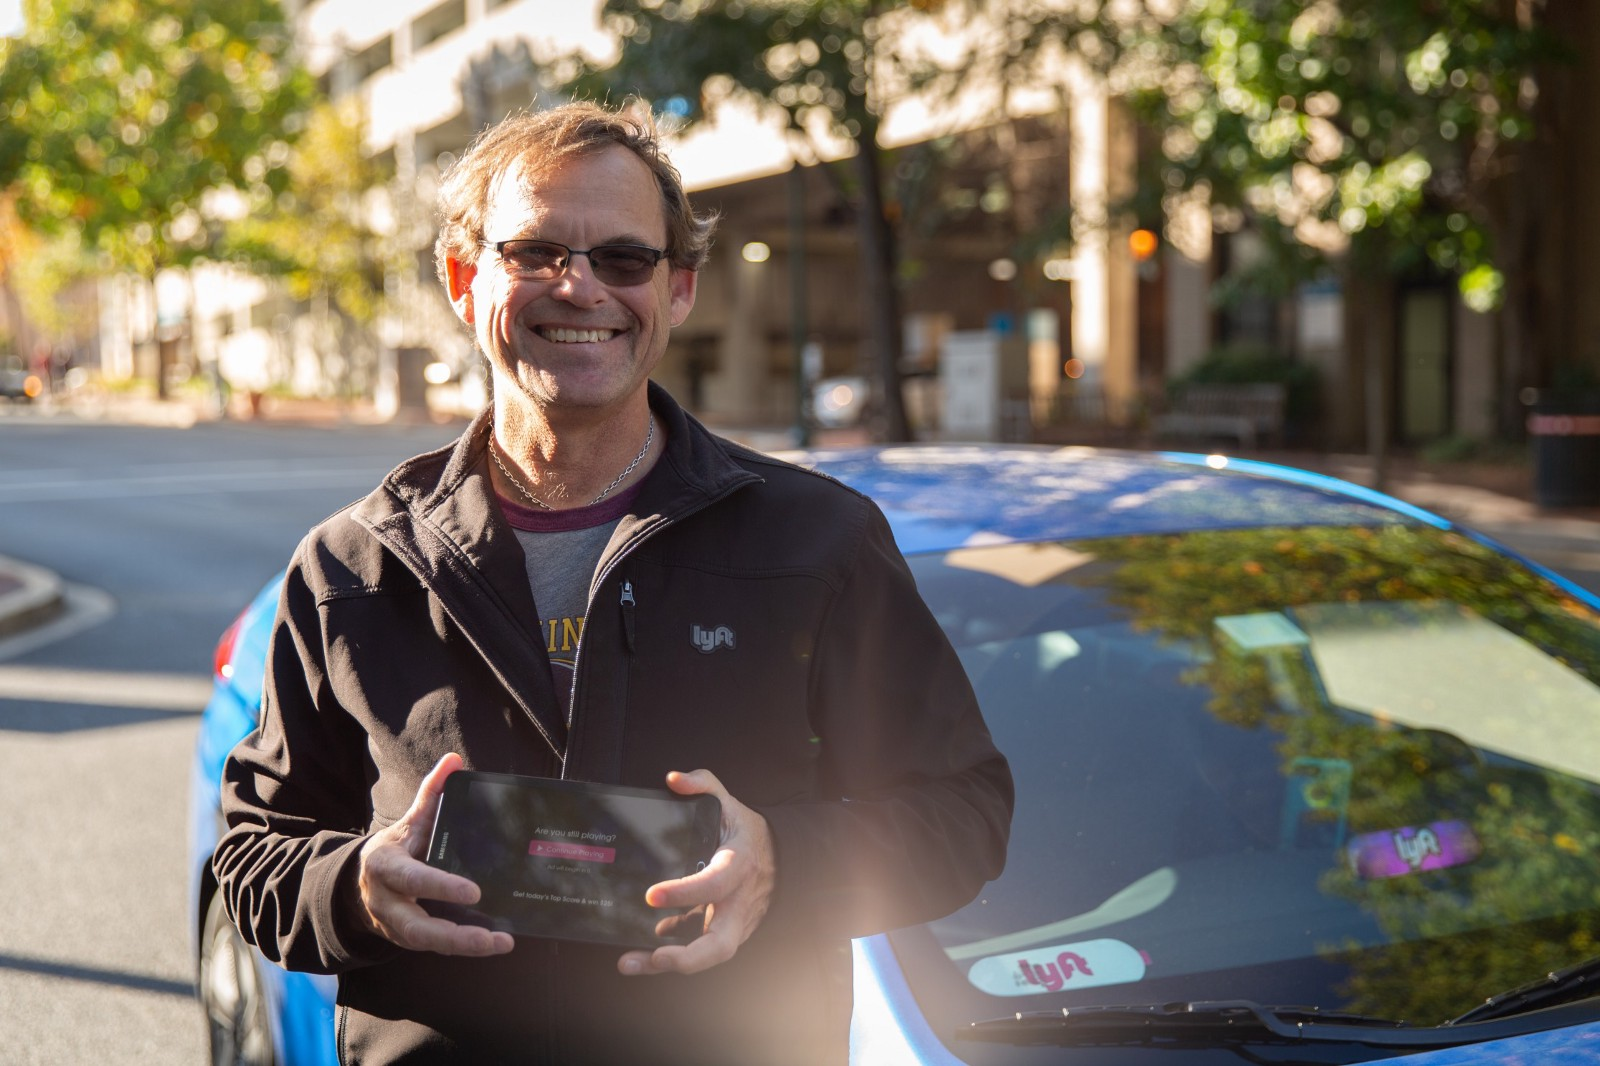 Dave Kremnitzer, a rideshare driver, stands with his Octopus rideshare entertainment tablet in front of his vehicle.